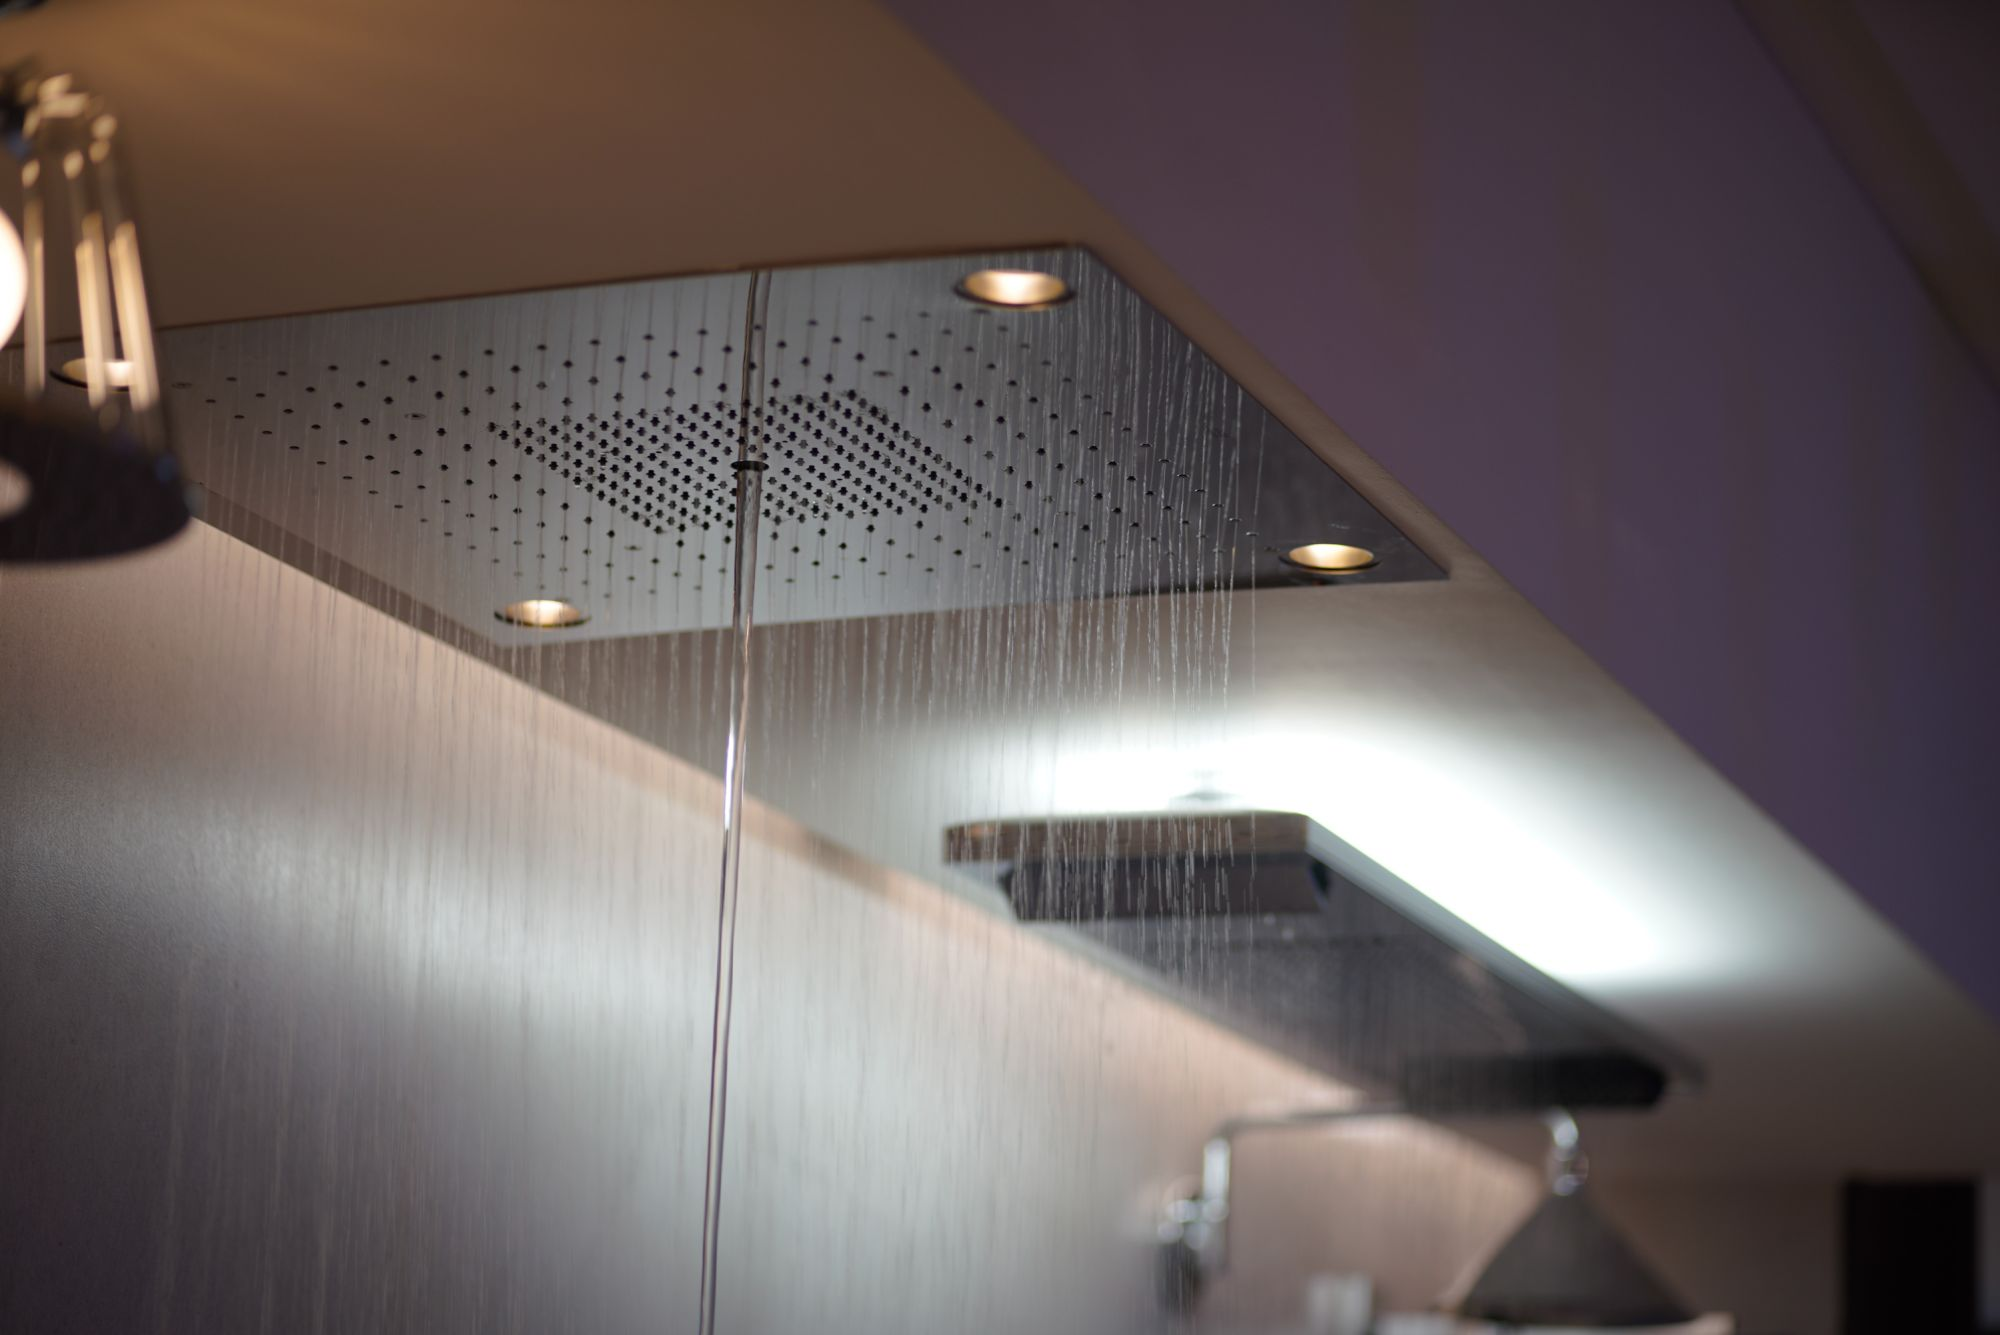 Kuysen Philippines Offers A Luxurious Shower Experience With Their Cutting-Edge Bathroom System